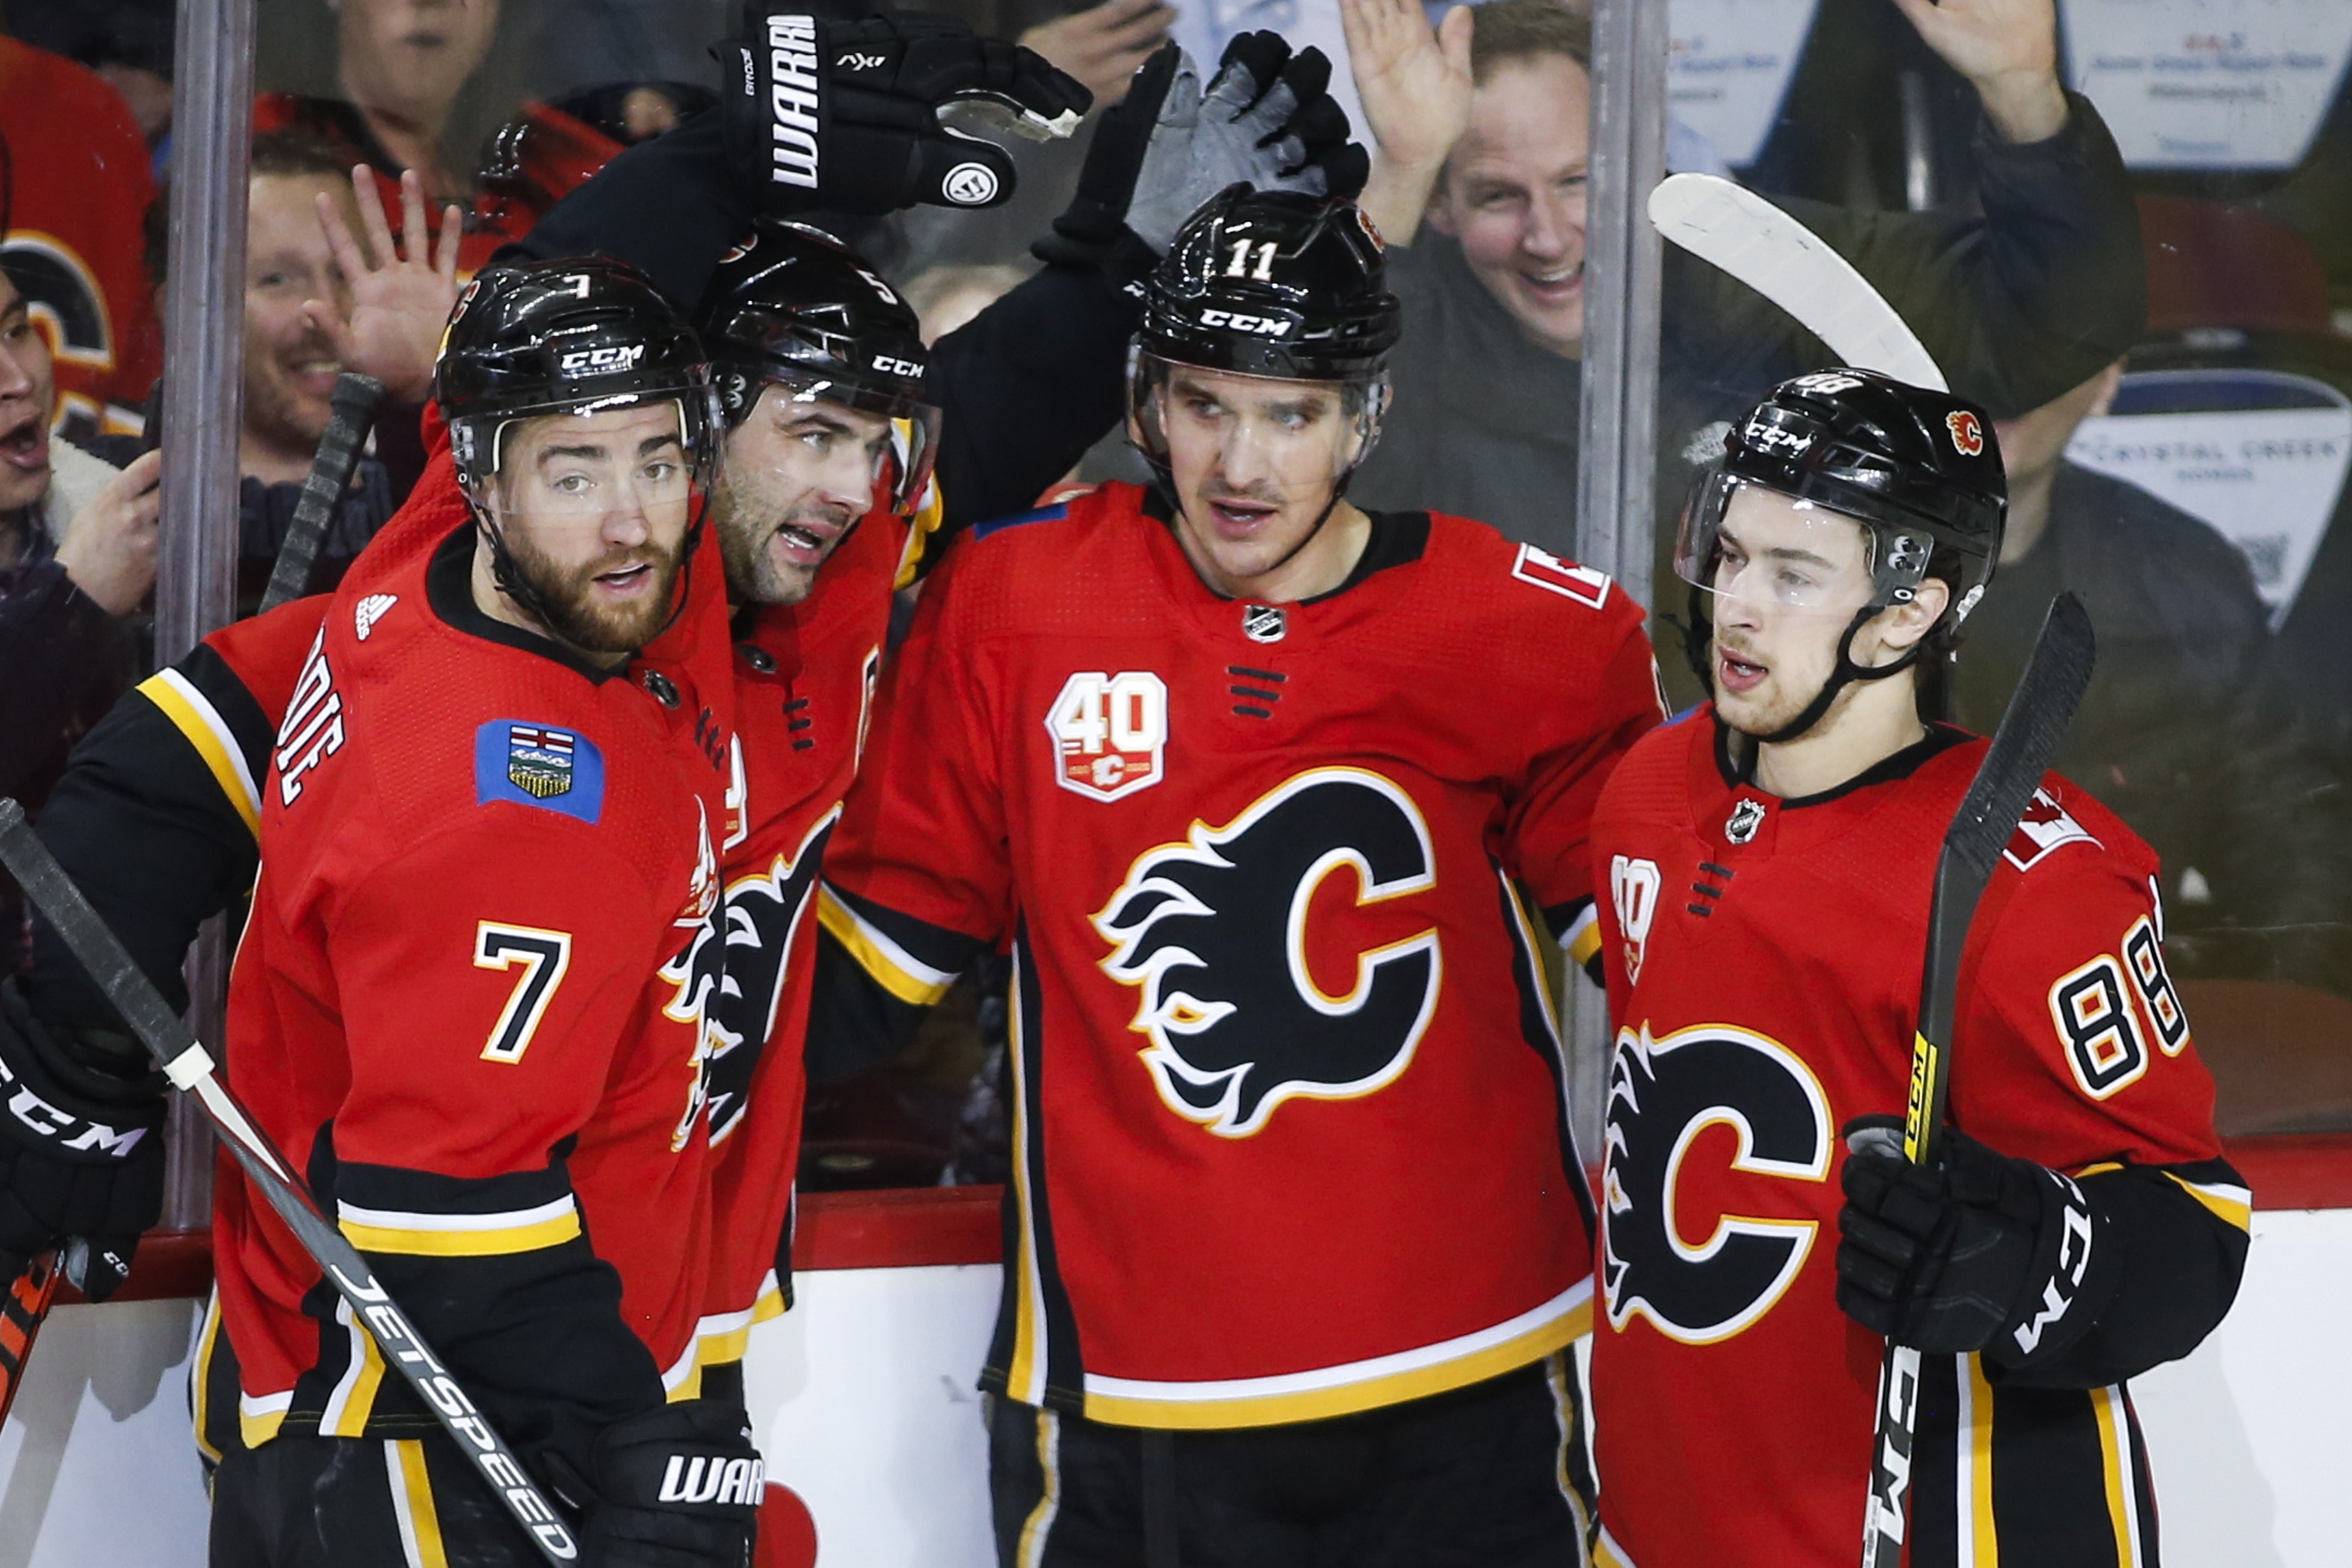 Matthew Tkachuk sets up Flames in 3-2 victory over Coyotes